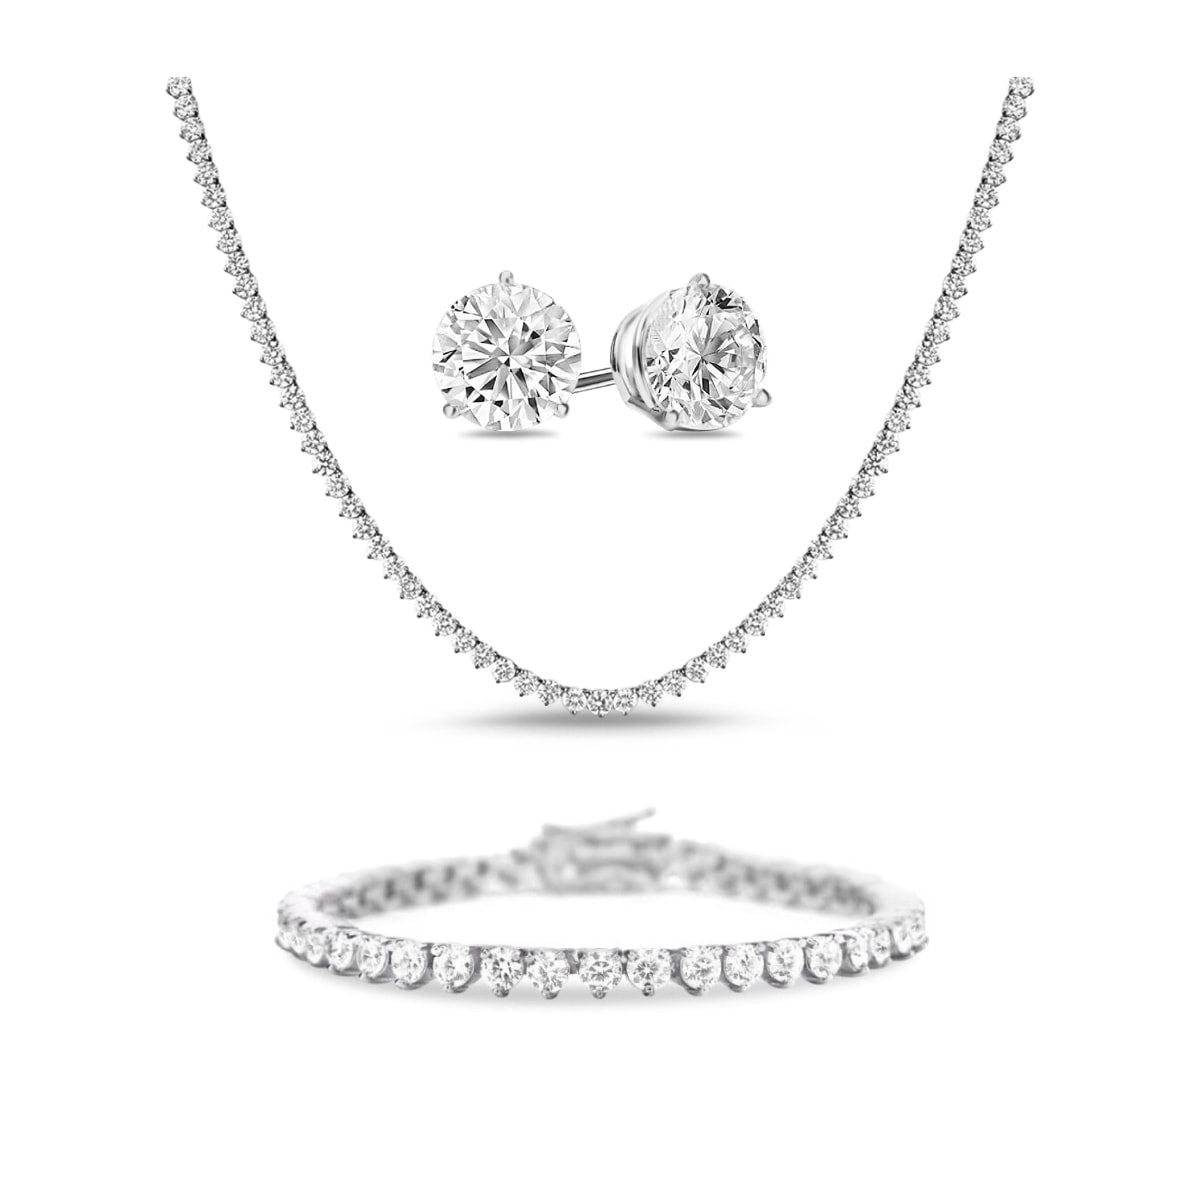 [PROMO SET] Vivere 3 Prong Necklace Bracelet Earrings Diamond Set